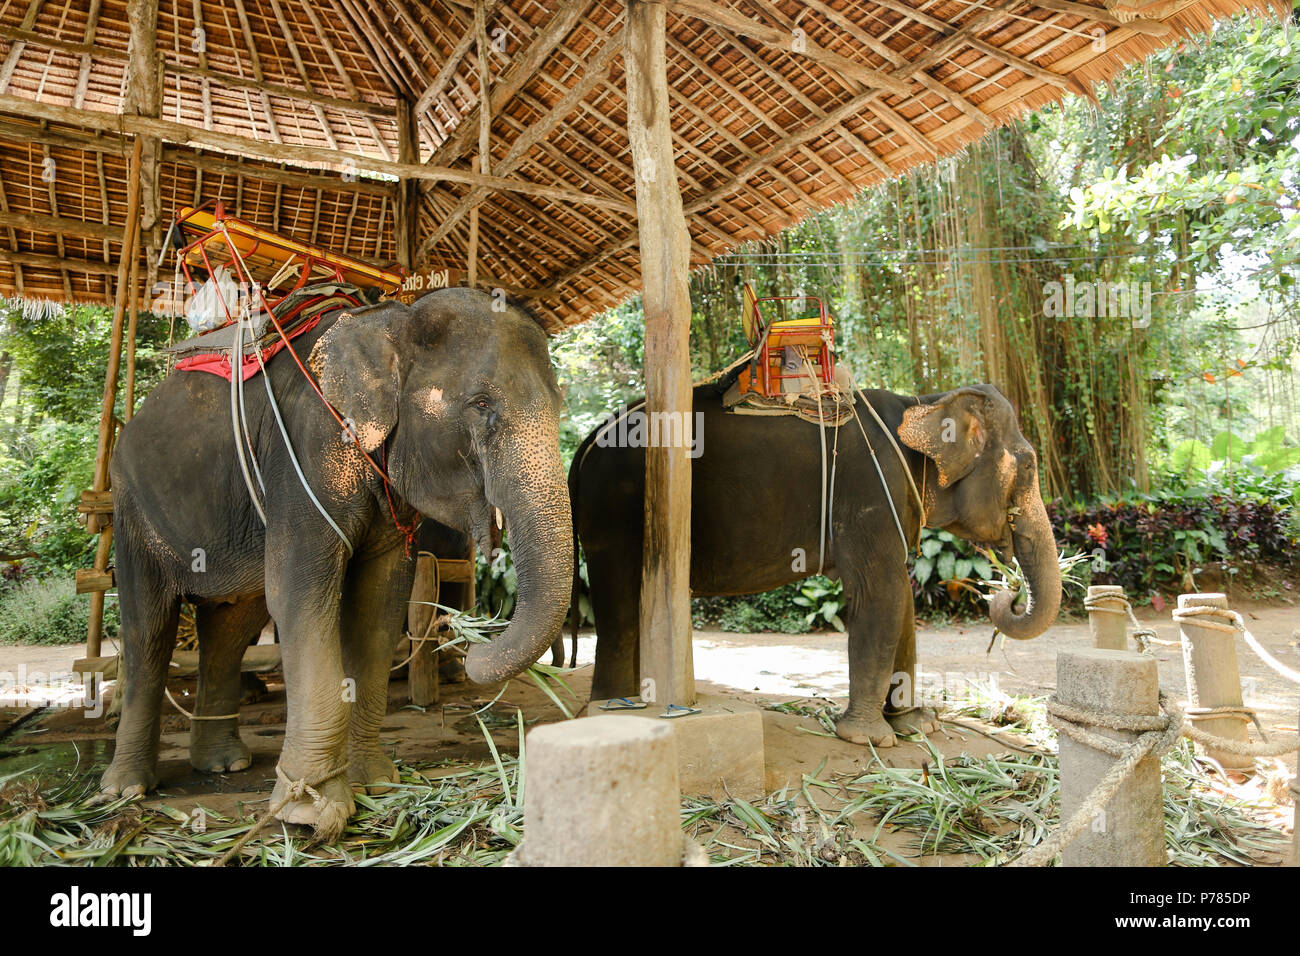 Huge elephants with rider saddle in Thailand. - Stock Image